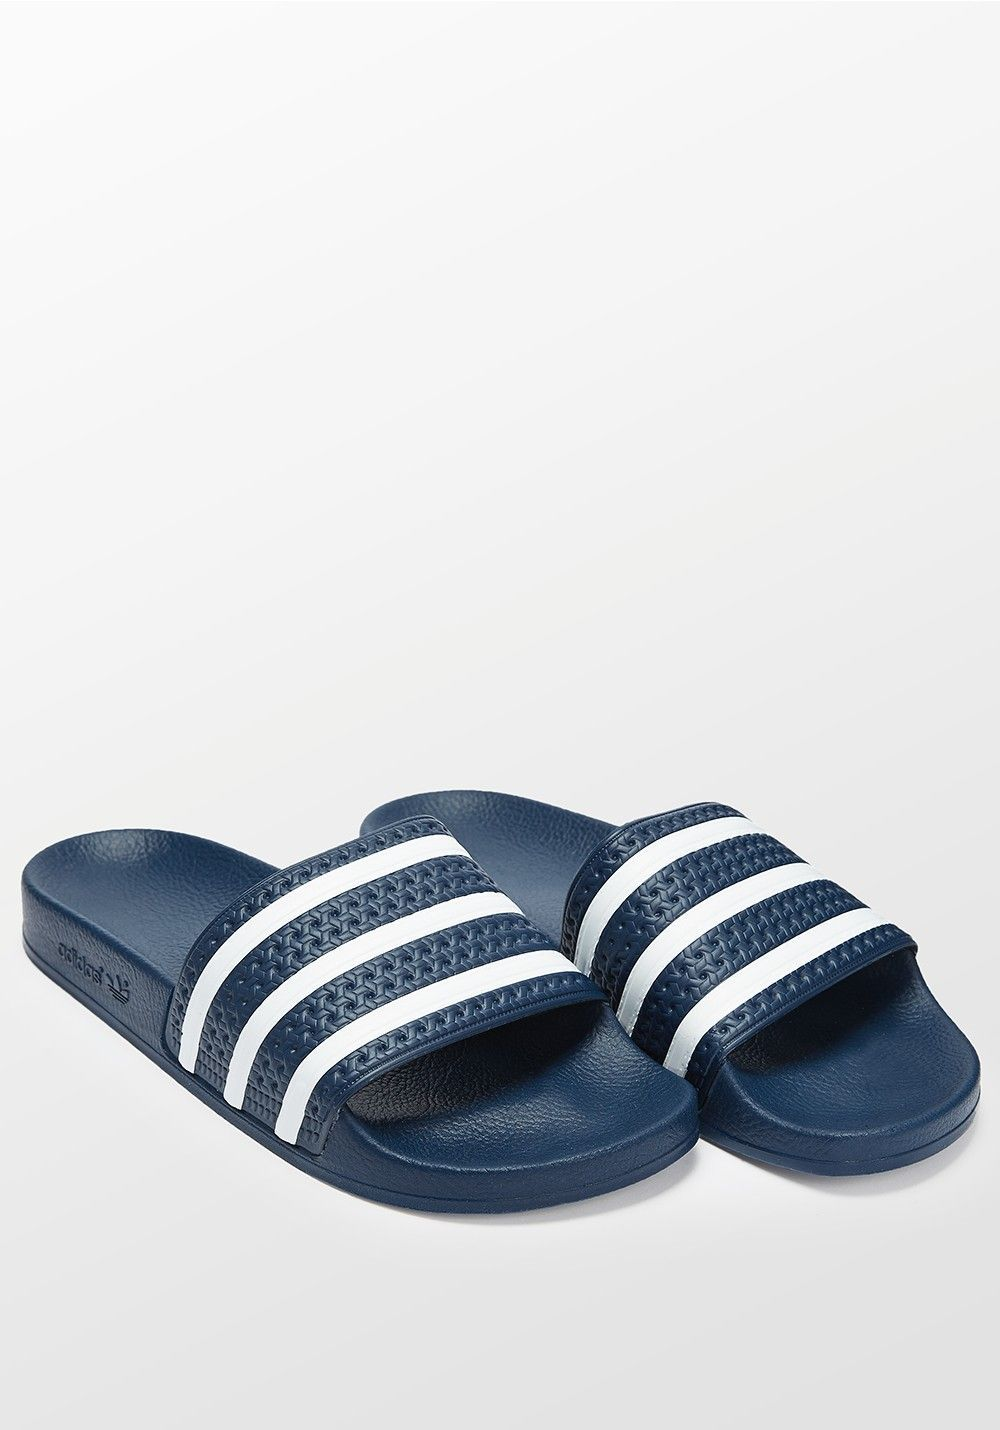 b8998709fd4cc Image result for adidas slides blue and white